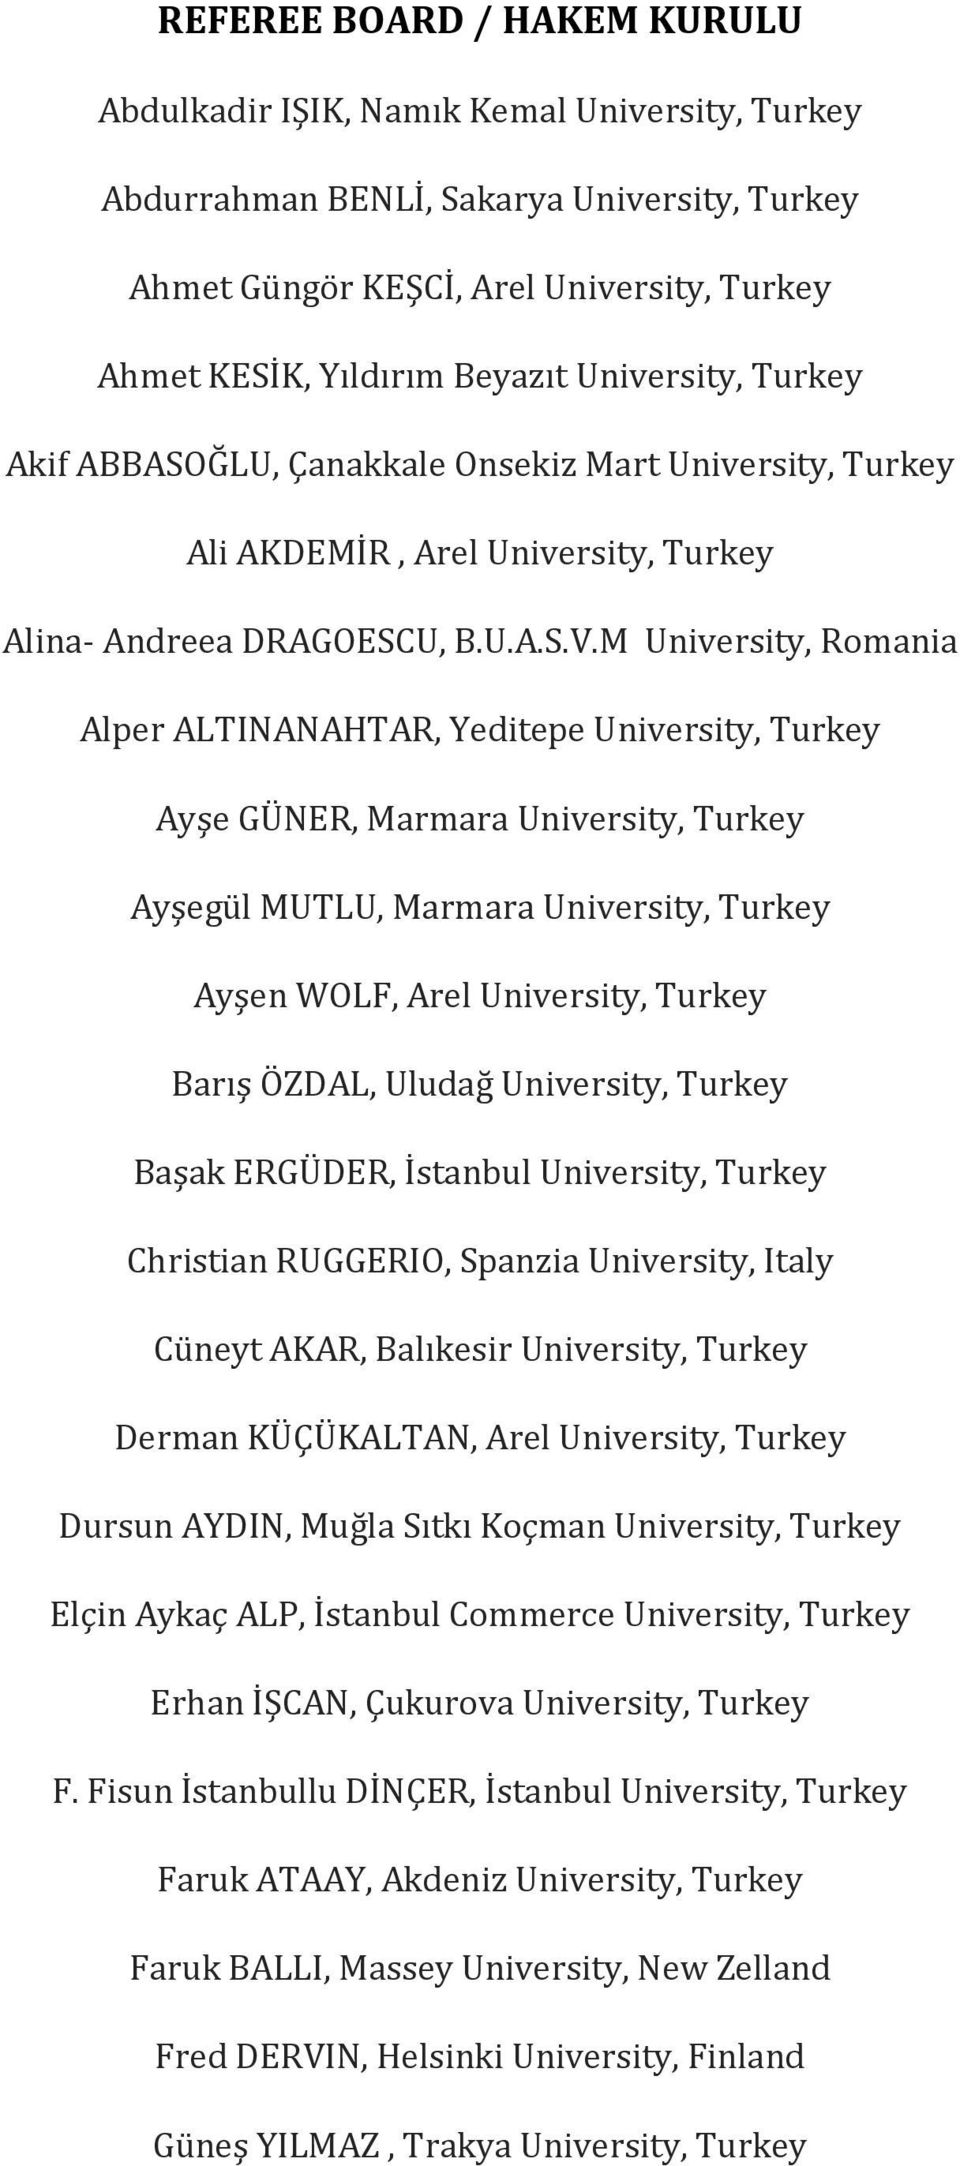 M University, Romania Alper ALTINANAHTAR, Yeditepe University, Turkey Ayşe GÜNER, Marmara University, Turkey Ayşegül MUTLU, Marmara University, Turkey Ayşen WOLF, Arel University, Turkey Barış ÖZDAL,